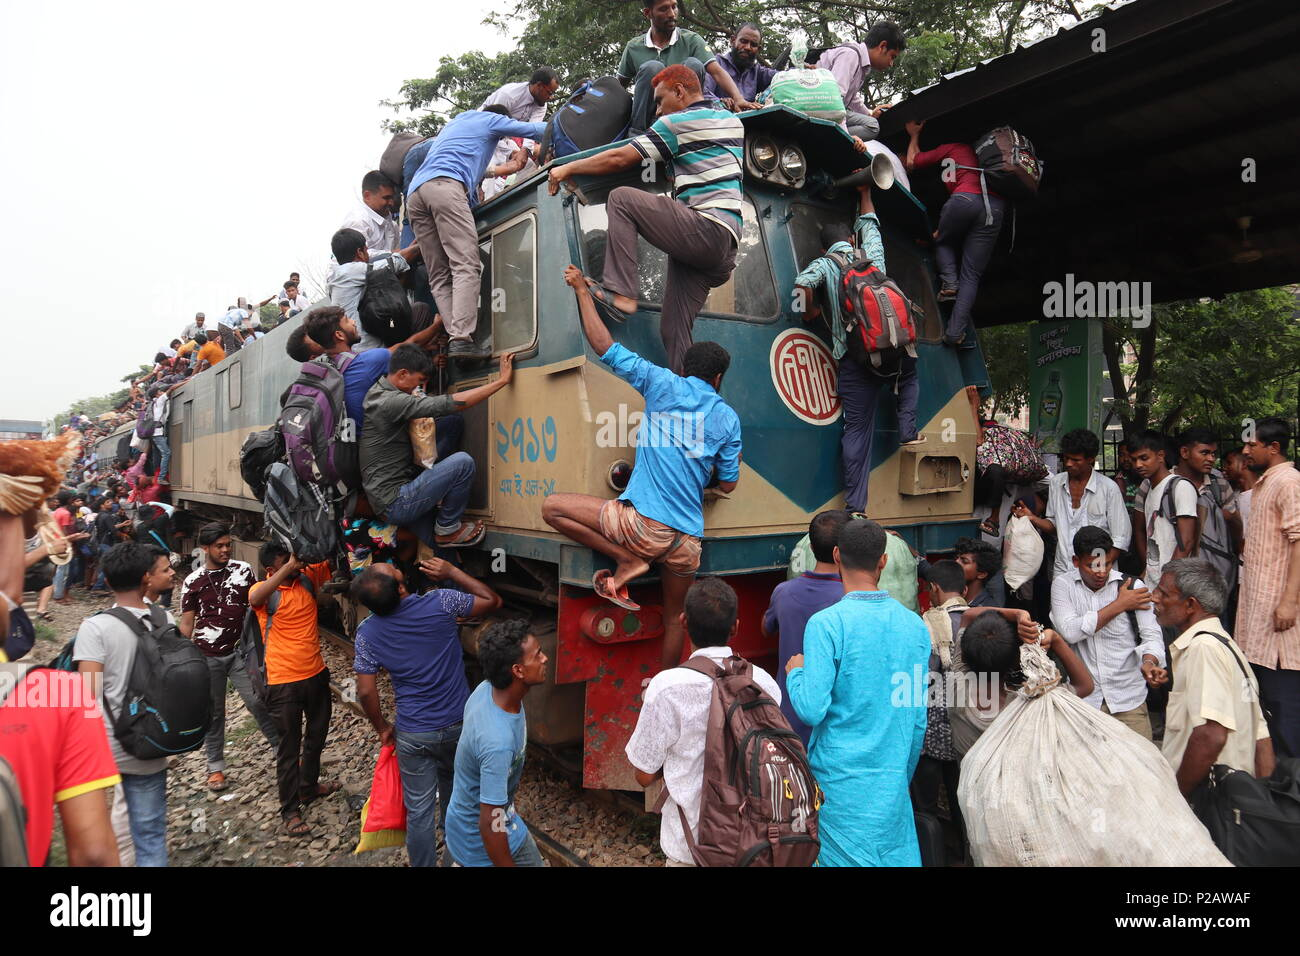 Risky journey not able to return home. Day after tomorrow Muslim religion biggest festival will begin. So lots of people starting to return home. Bus and air price is too high for low income people. Low income people traveled by train roof. The train already started and full. The guy fall from running train and lost his hand and leg Credit: RONY BARUA/Alamy Live News - Stock Image